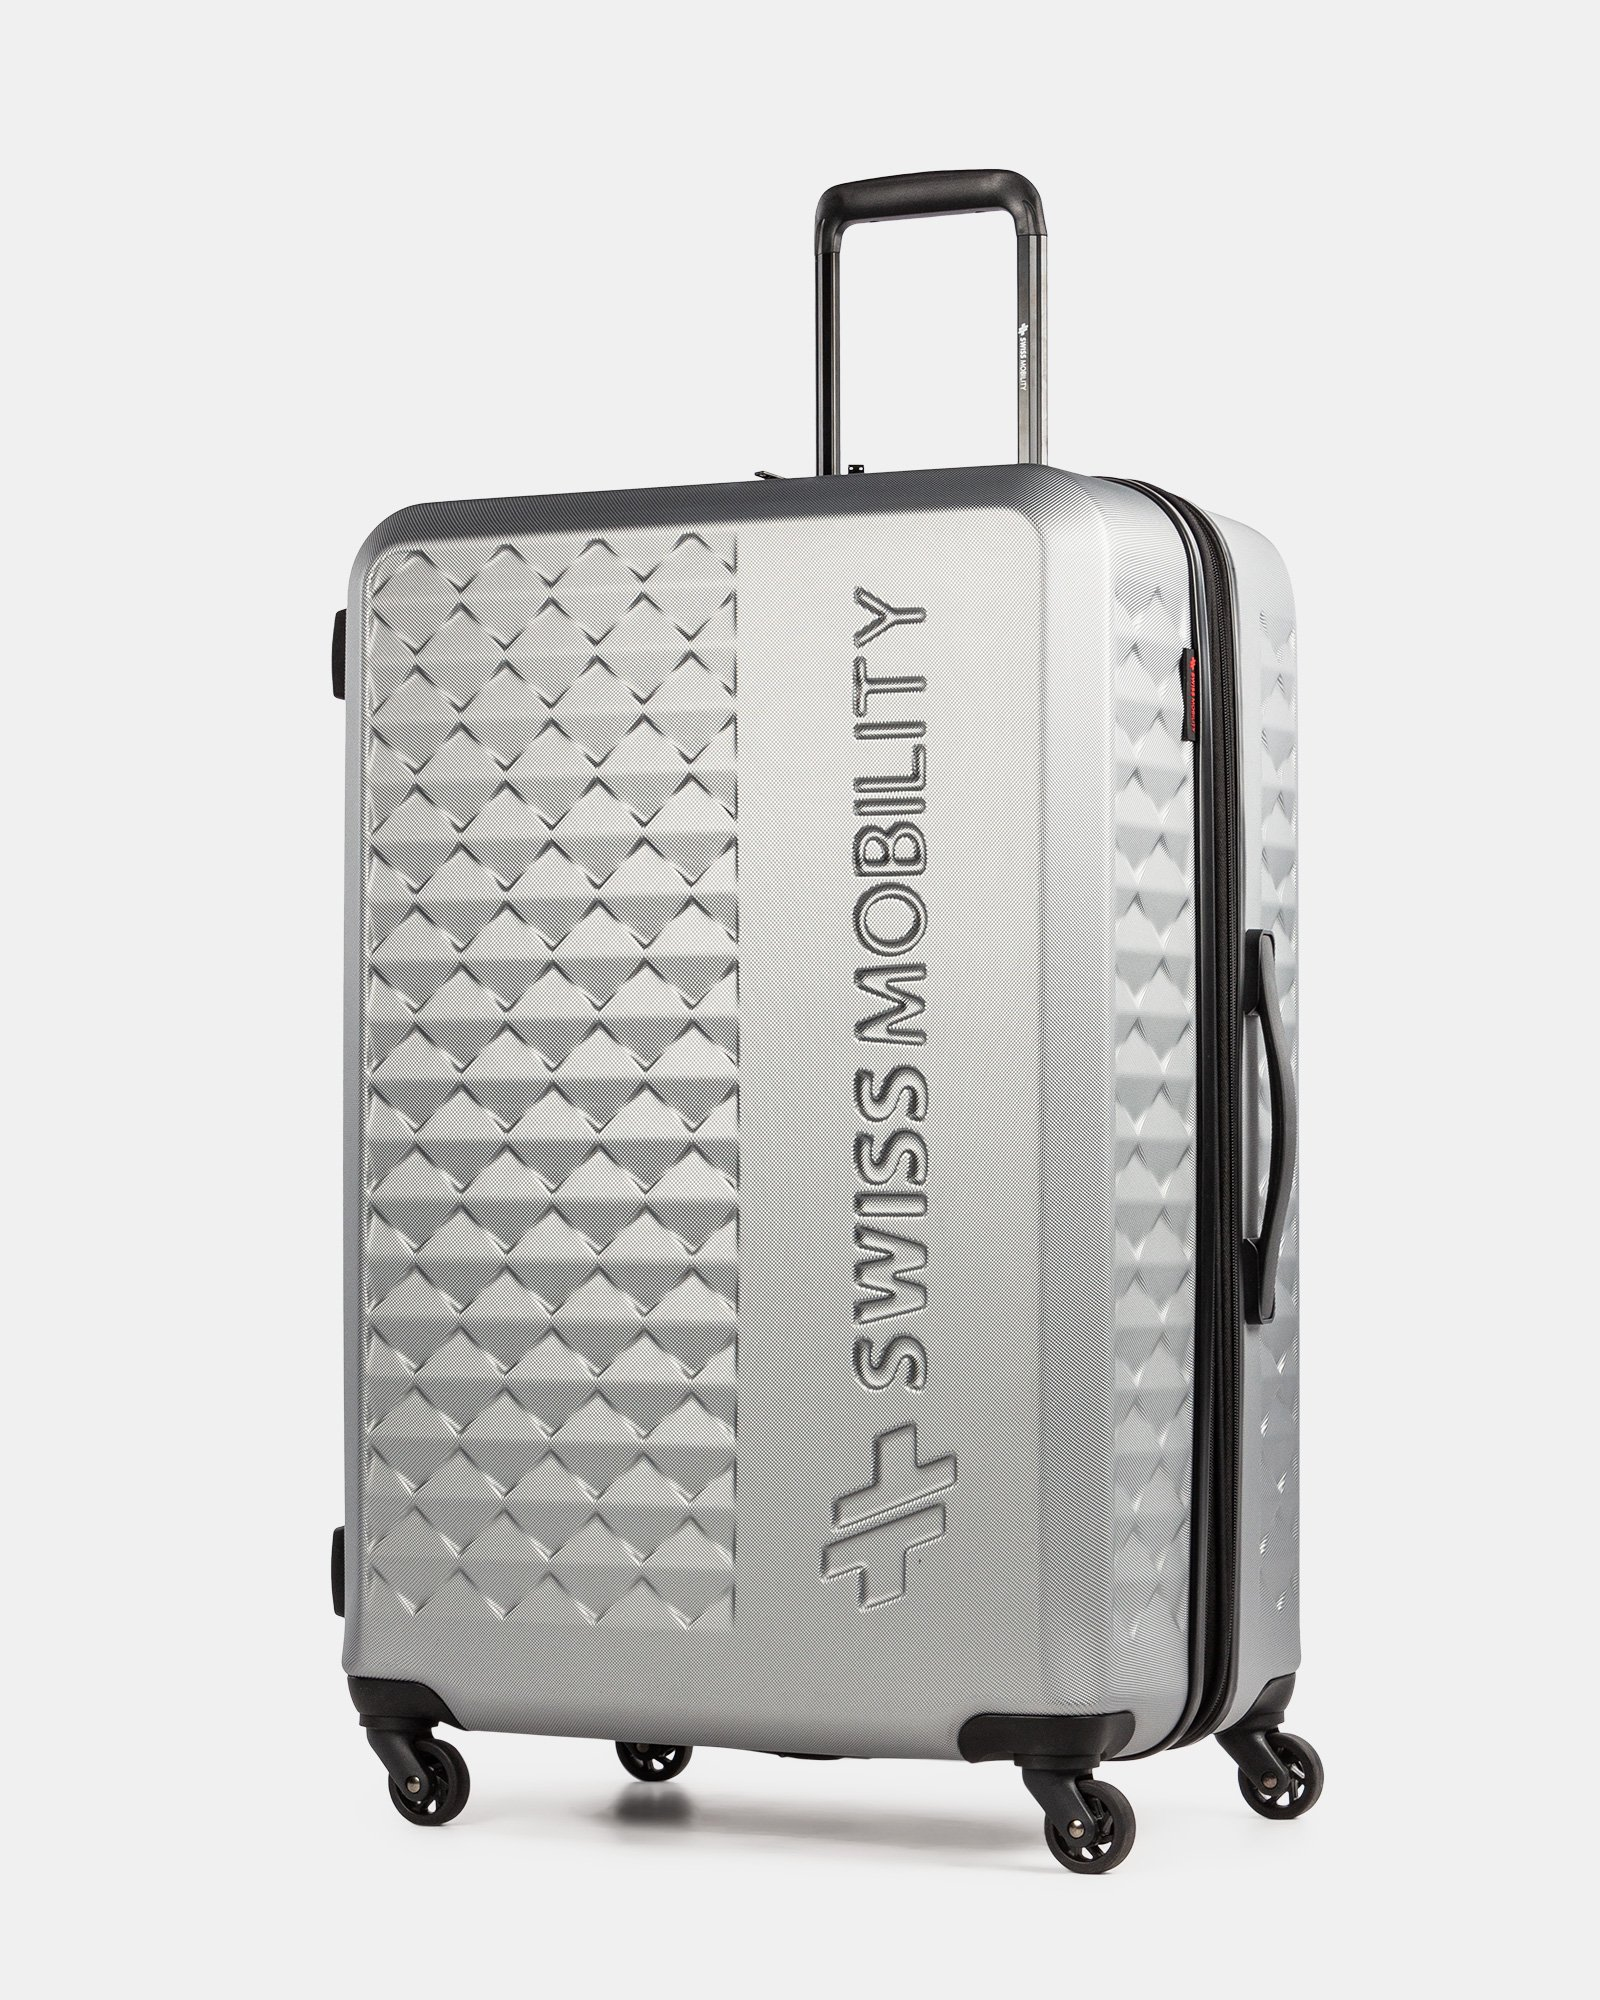 Ridge -Lightweight Hardside Luggage 28'' with Spinner wheels - Silver - Swiss Mobility - Zoom